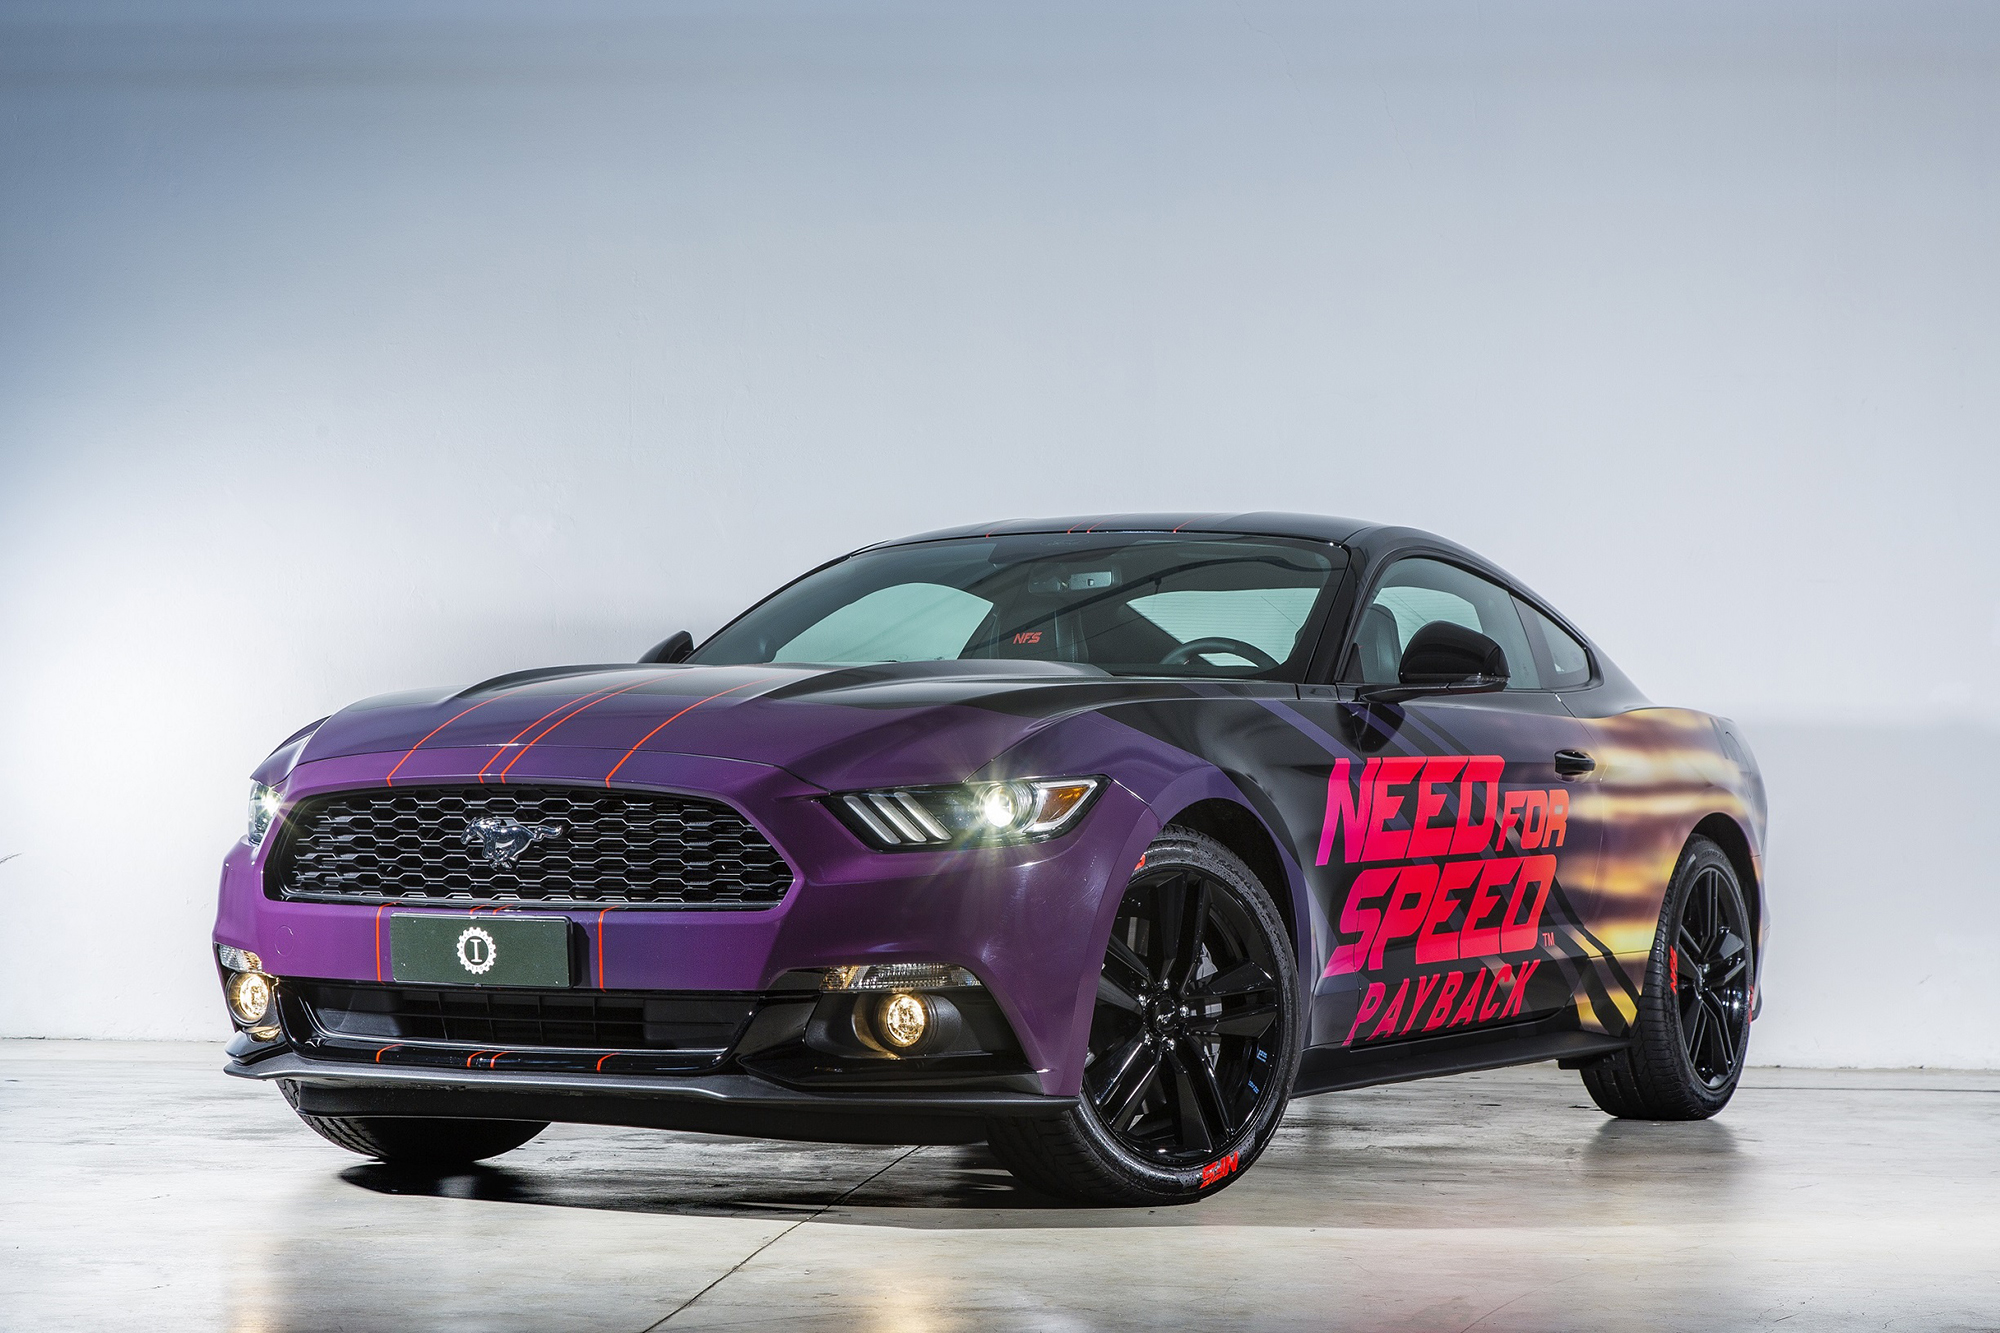 ford mustang personalizzata per need for speed payback qn motori. Black Bedroom Furniture Sets. Home Design Ideas